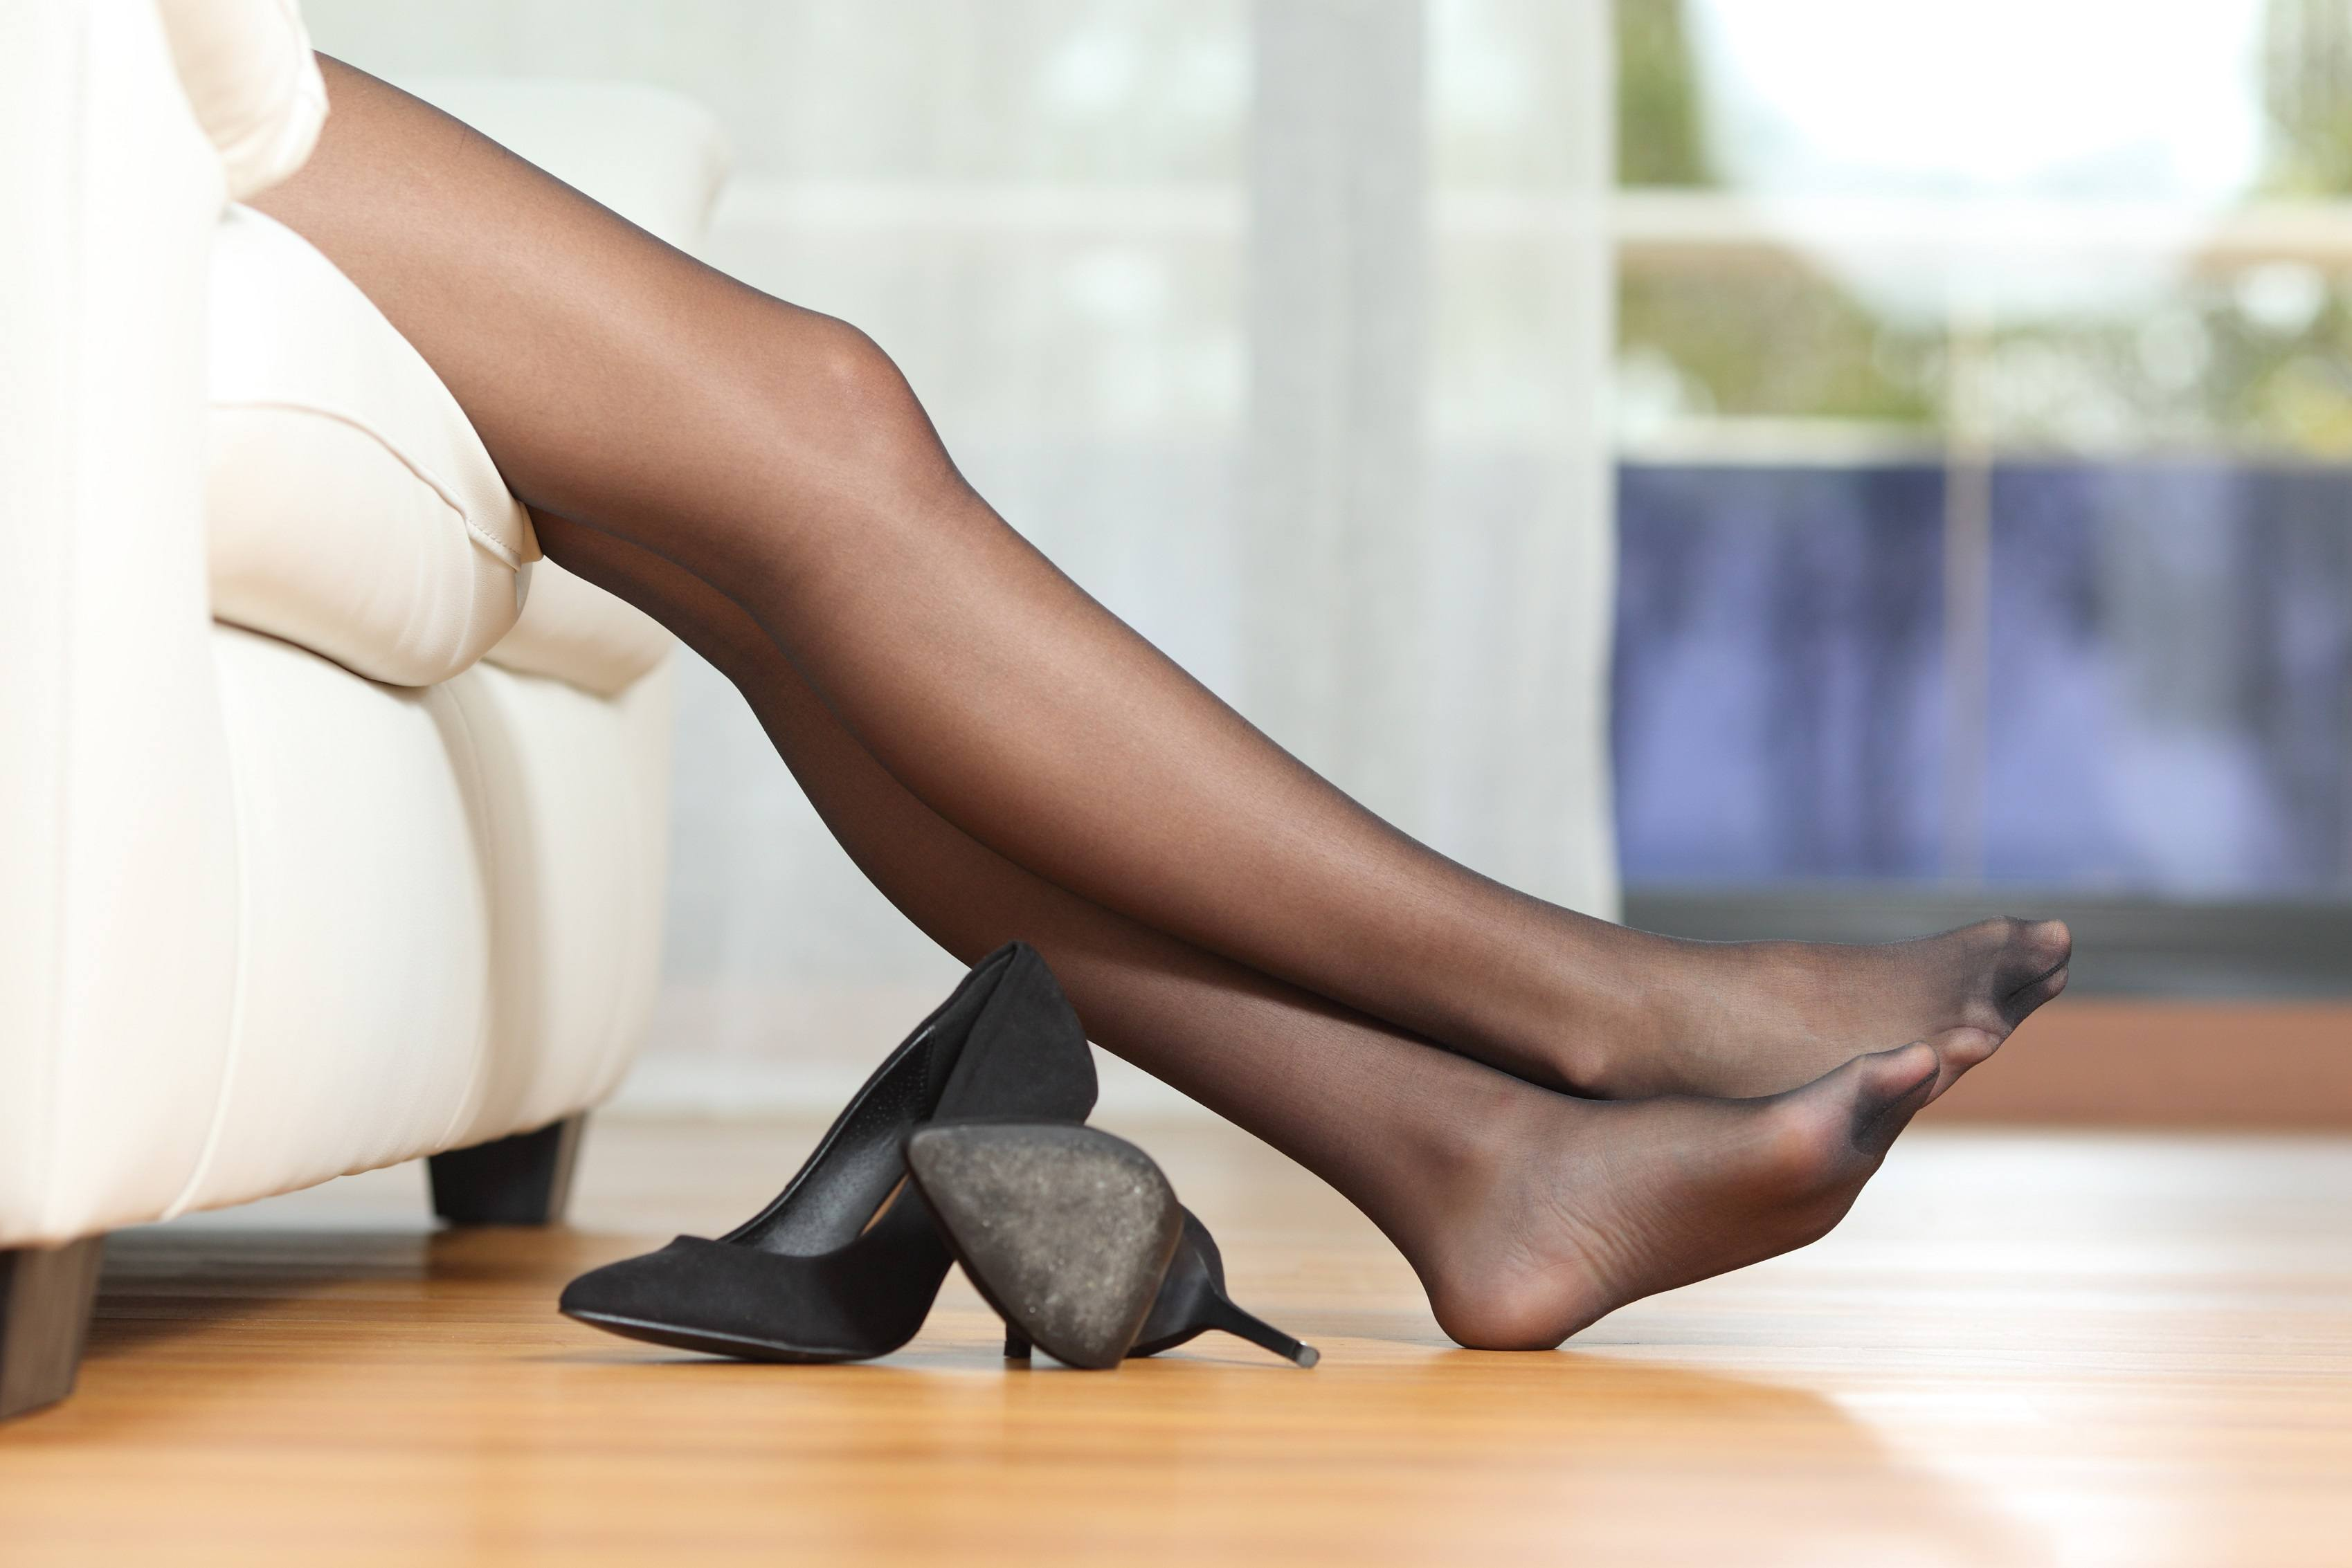 Woman stretching her legs out with tights